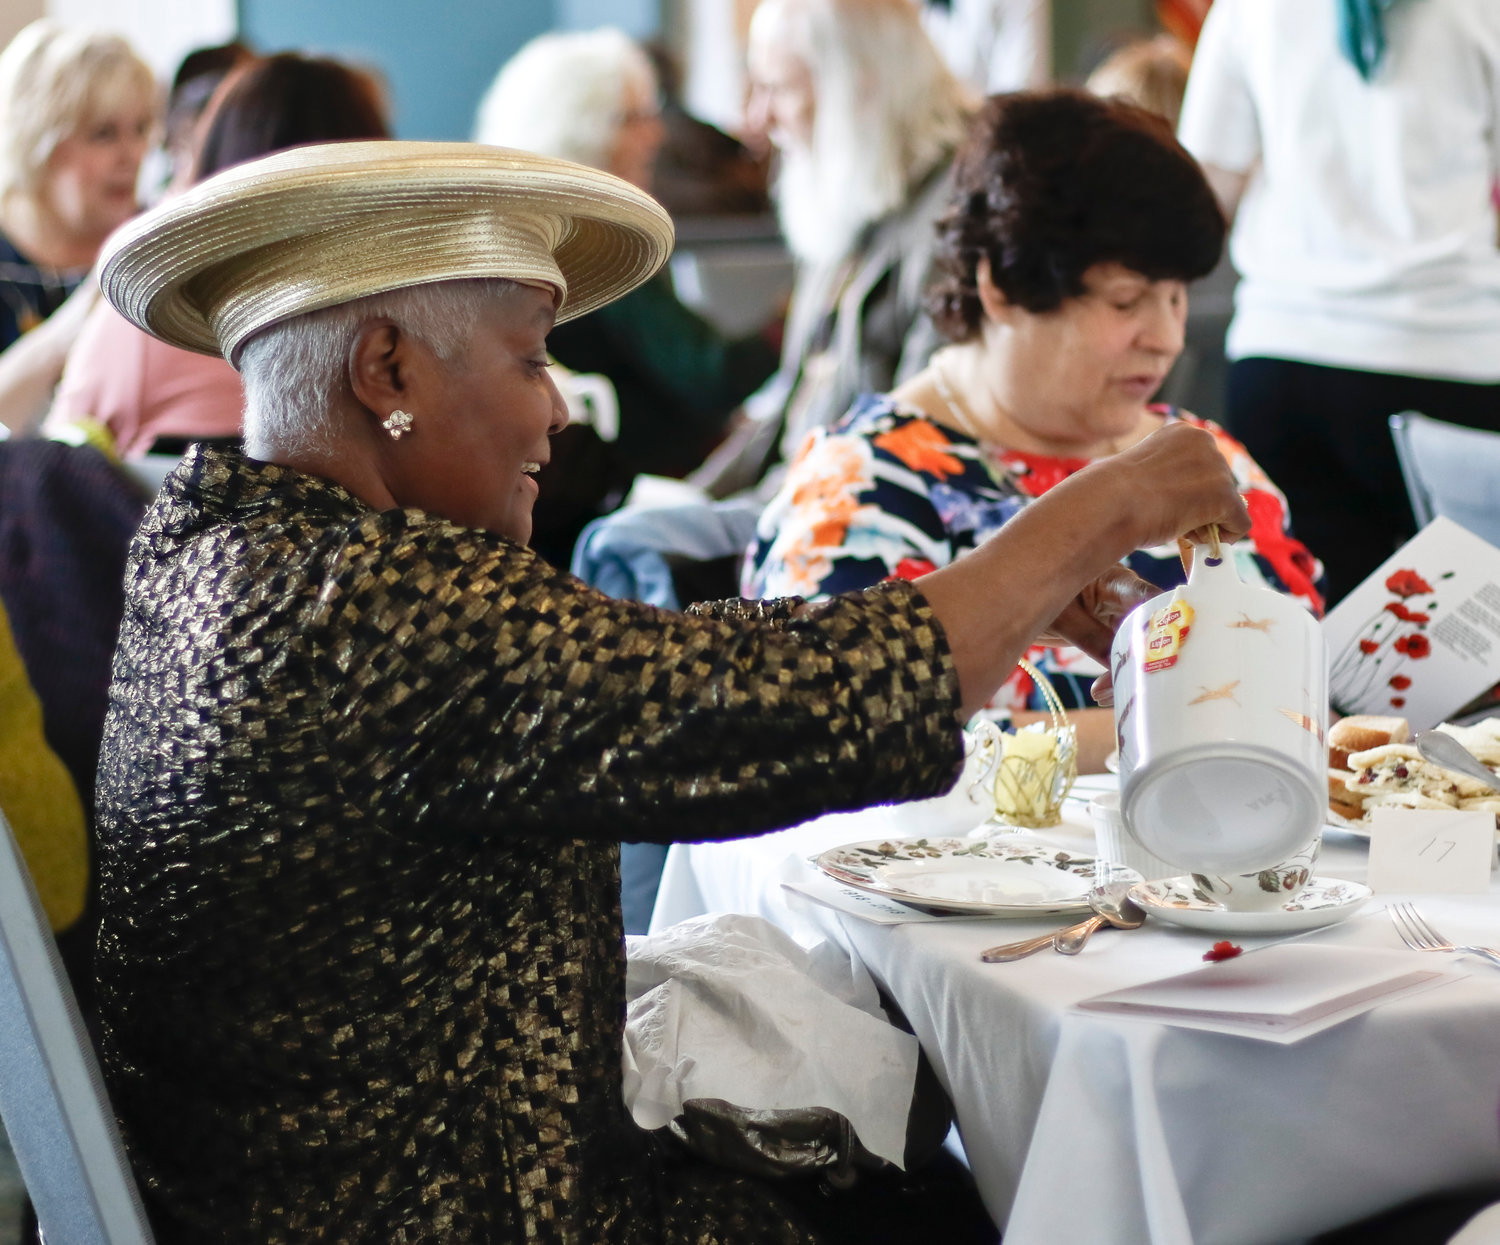 Mildred Bishop refilled her teacup at the 15th annual Historical Society of  East Rockaway and Lynbrook Winter Tea fundraiser on Jan. 27.